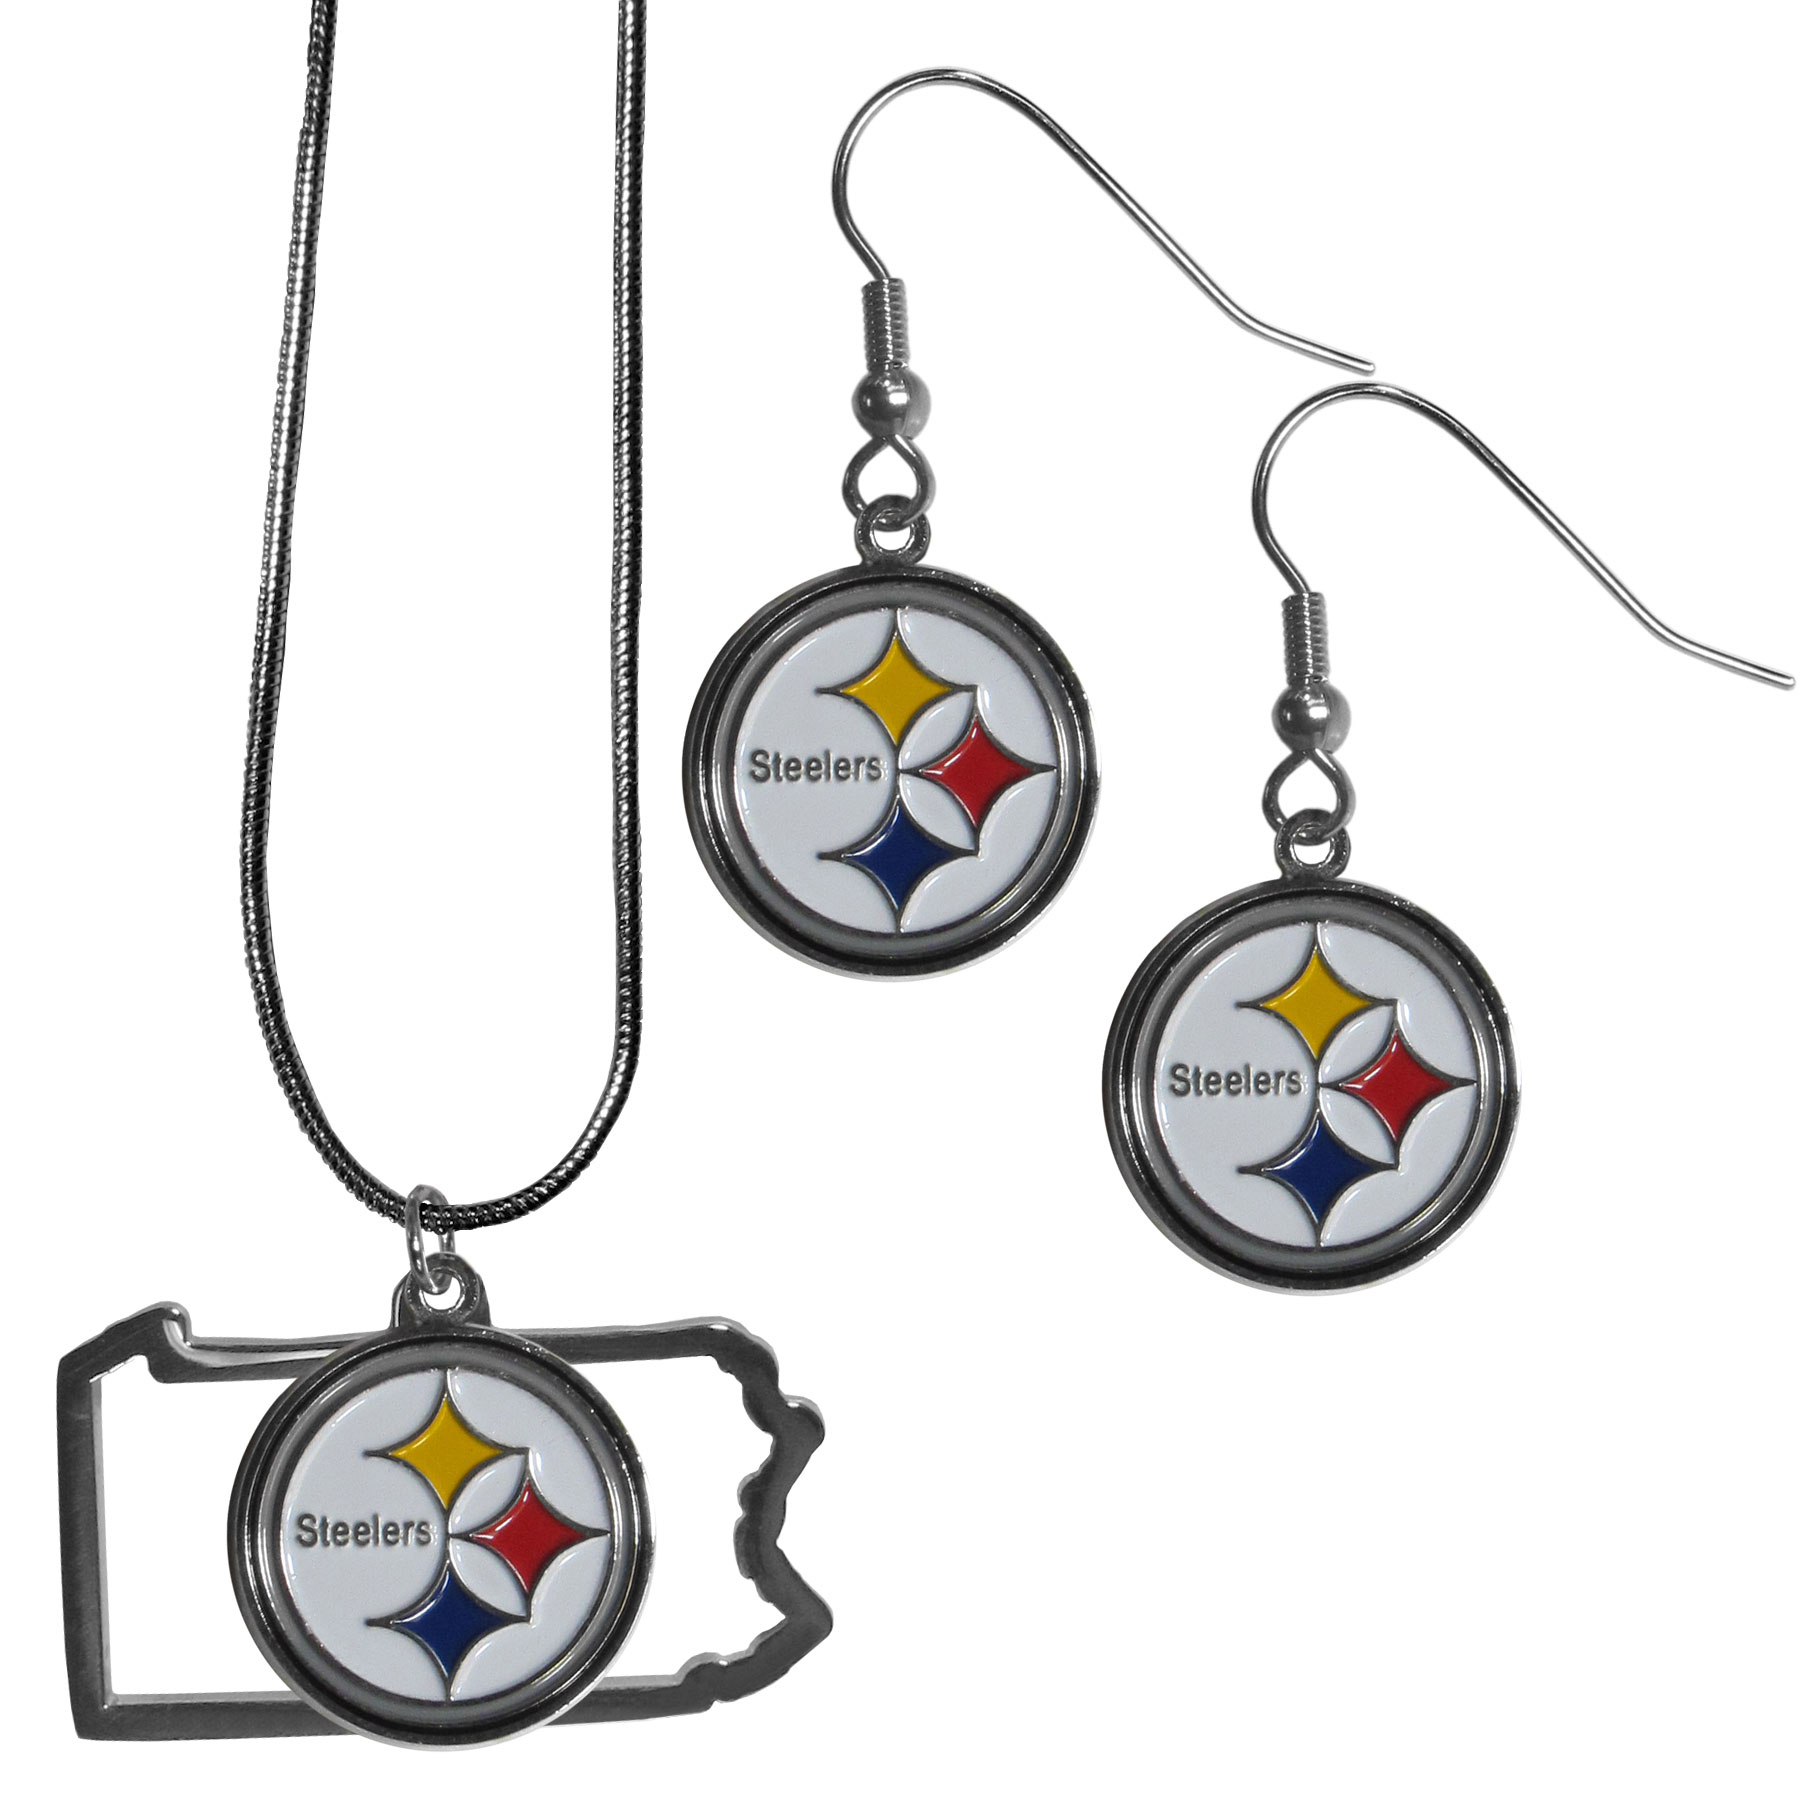 Pittsburgh Steelers Dangle Earrings and State Necklace Set - Get in on the trend! State themes are a trend that just keeps getting more popular and this jewelry set takes the state style and give it a sporty twist with a Pittsburgh Steelers necklace that features an Arizona state outline charm paired with a beautiful team charm and matching team charm dangle earrings. The earrings feature hypoallergenic fishhook posts that are nickel free.